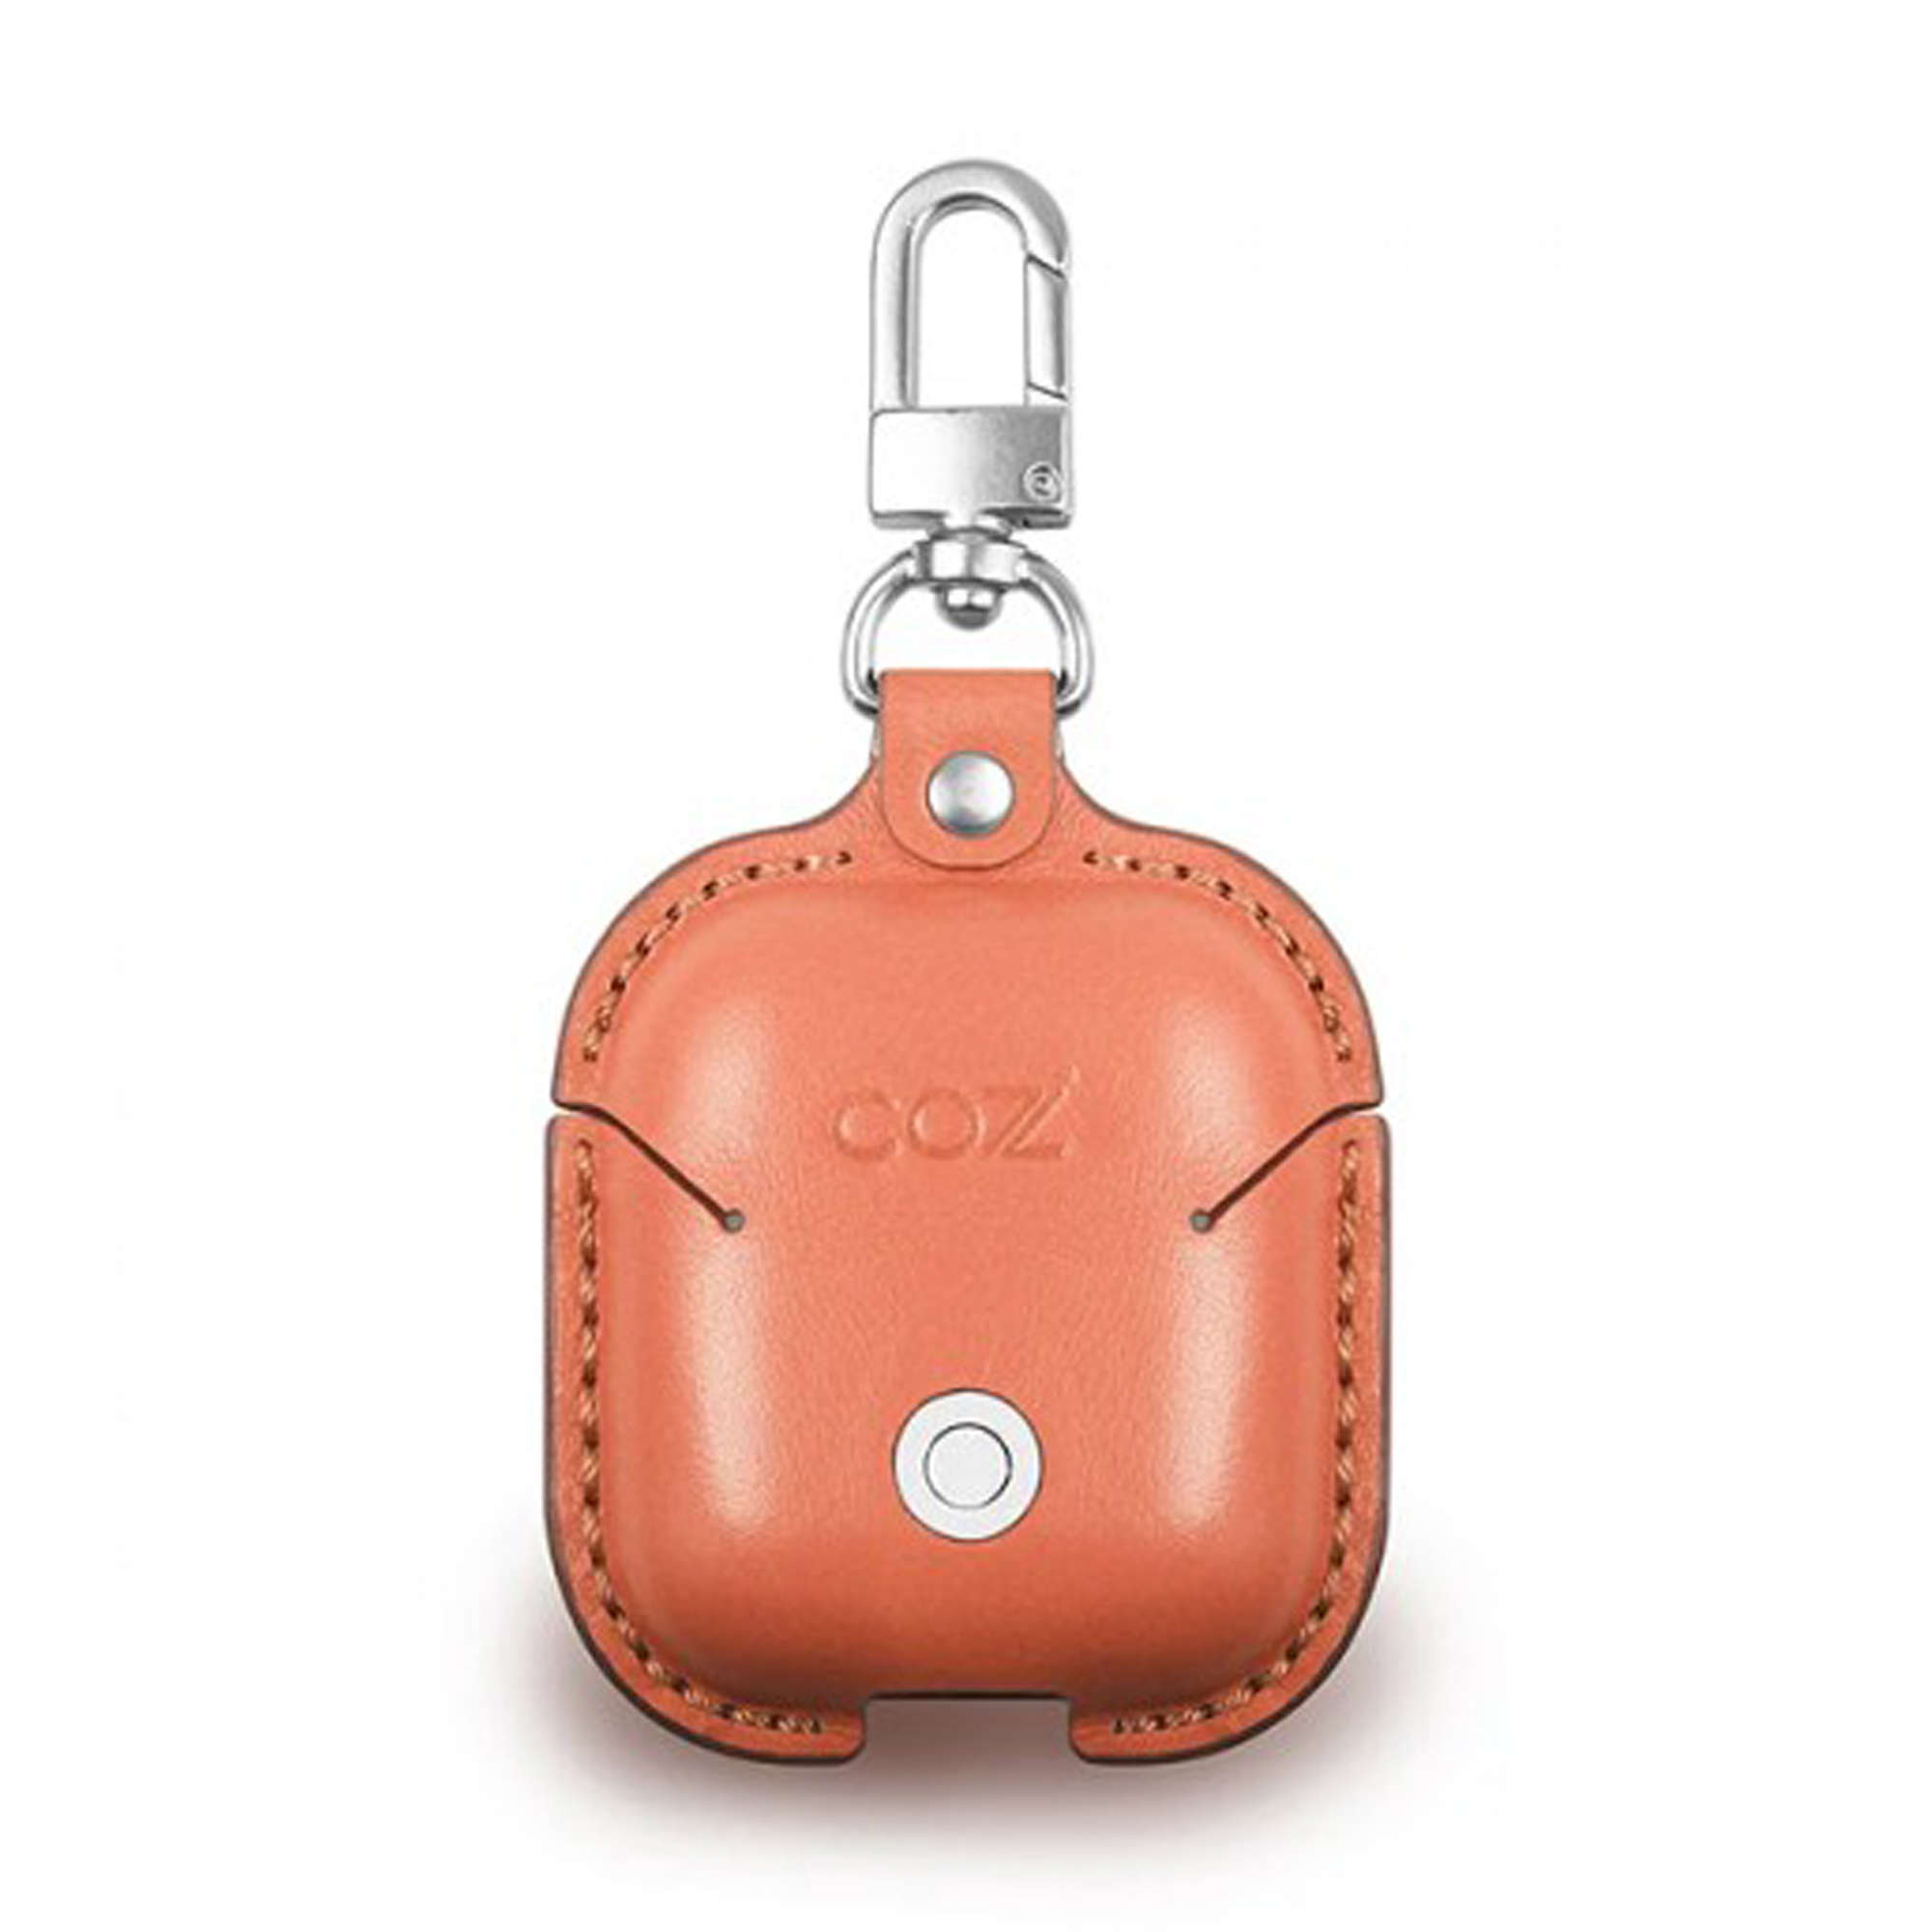 COZISTYLE LEATHER CASE FOR AIRPODS 1